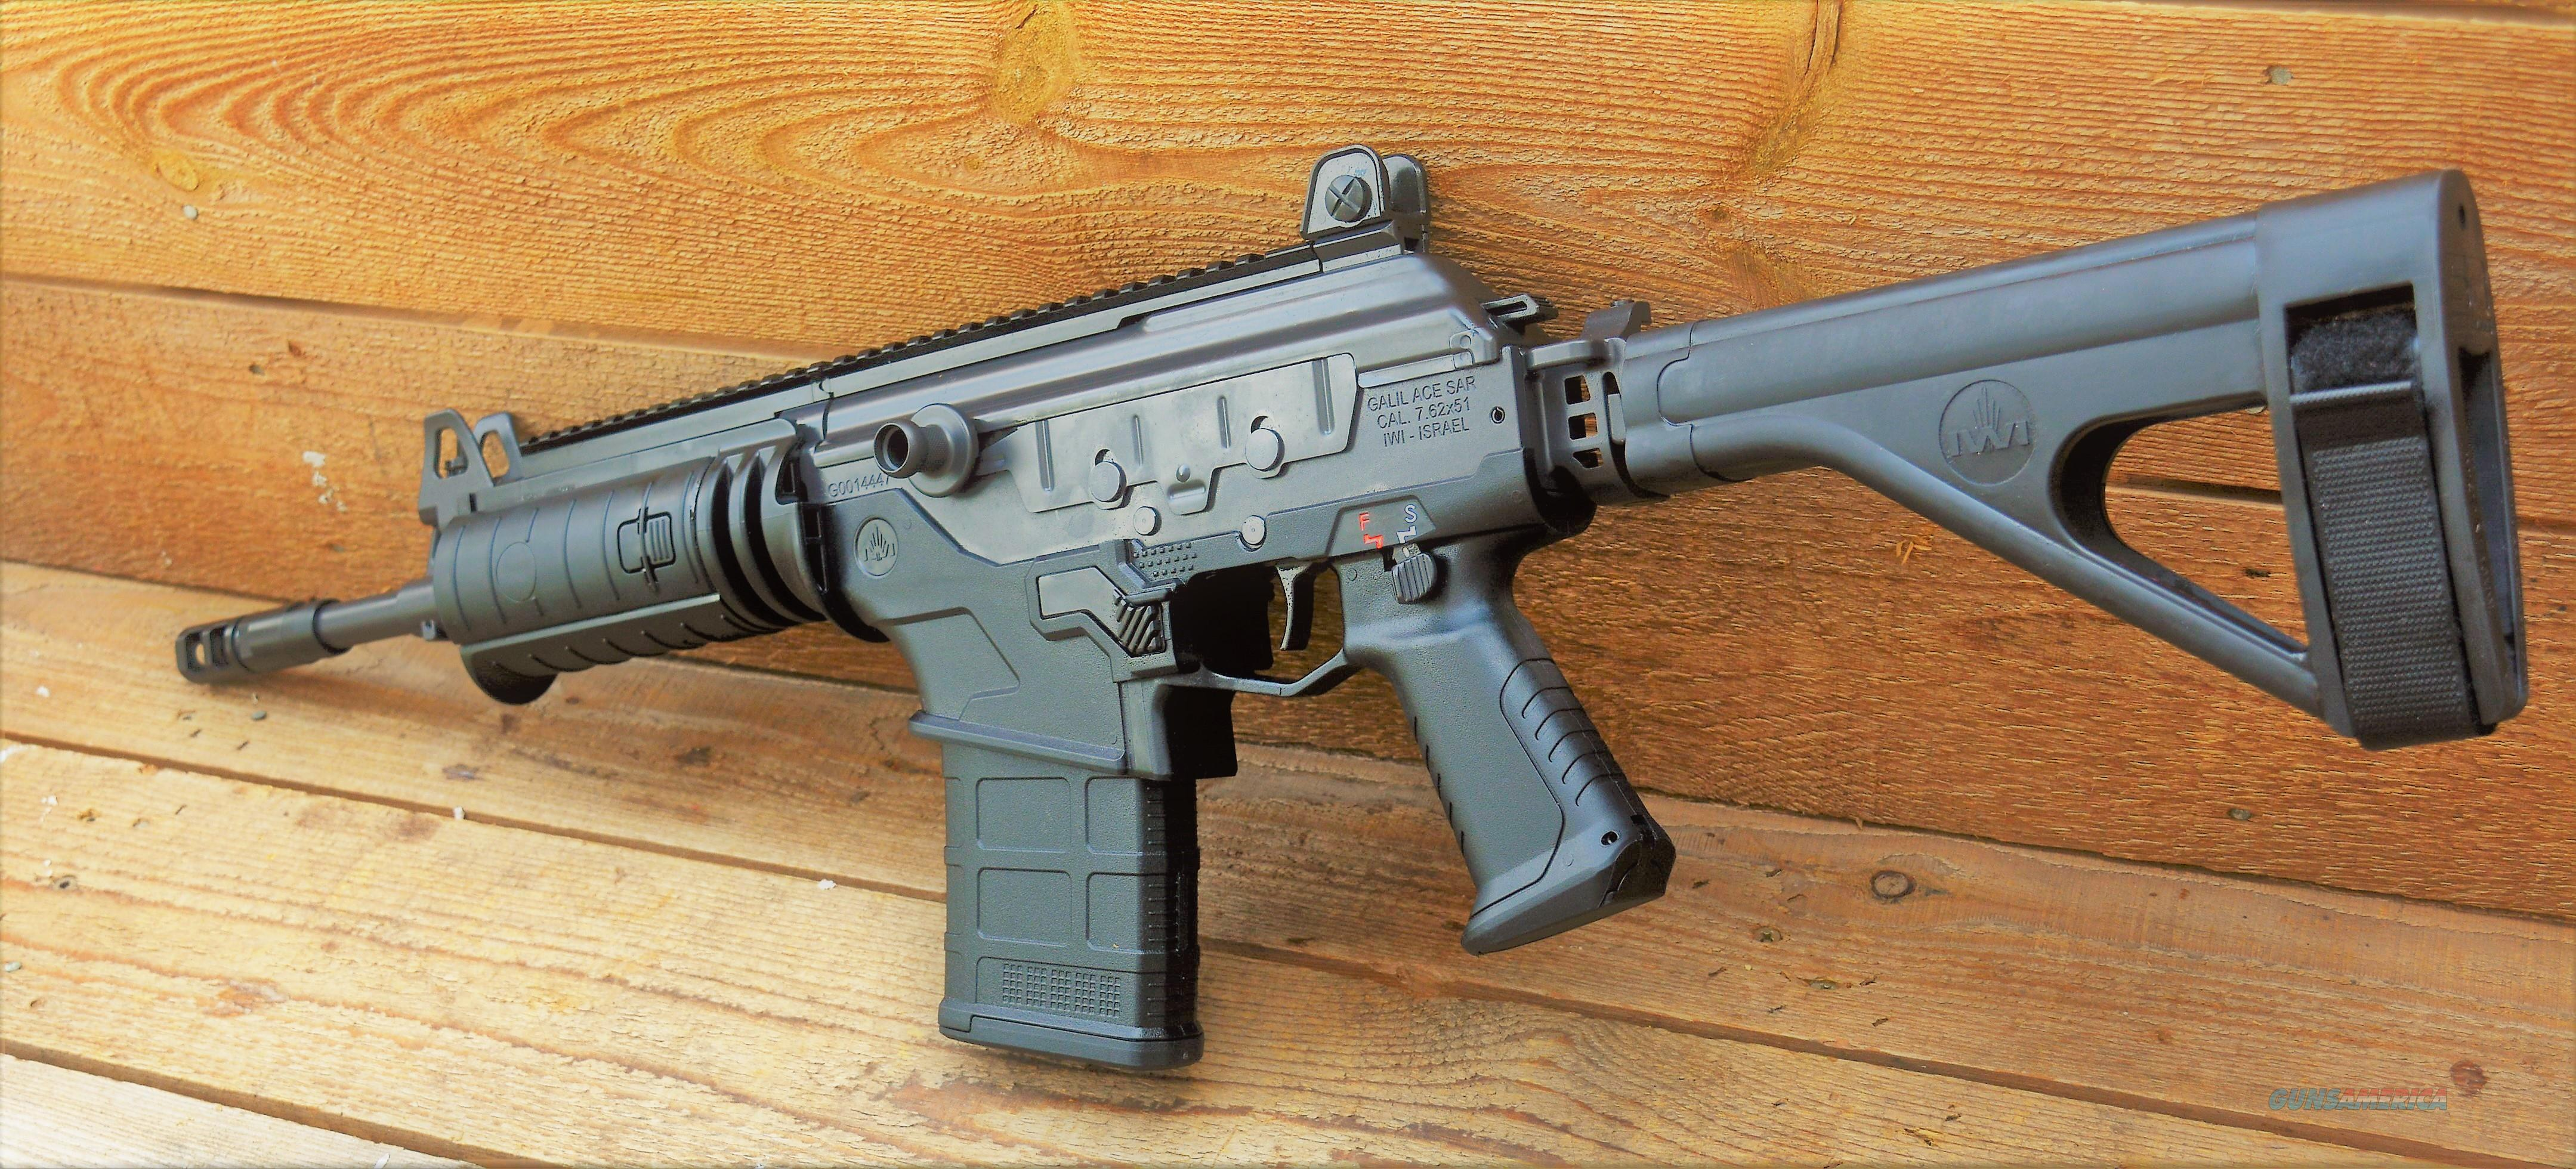 """1 $110 EASY PAY   IWI Galil Ace Side Folding Pistol W Stabilizing Brace Pistol steel milled receiver 7.62 NATO 20 Rounds 11.8""""  Cold Hammer Forged Chrome Lined Barrel 20 Rounds Magpul LR/SR25 Gen M3 Magazine Compatible  Black GAP51SB  Guns > Rifles > IWI Rifles"""